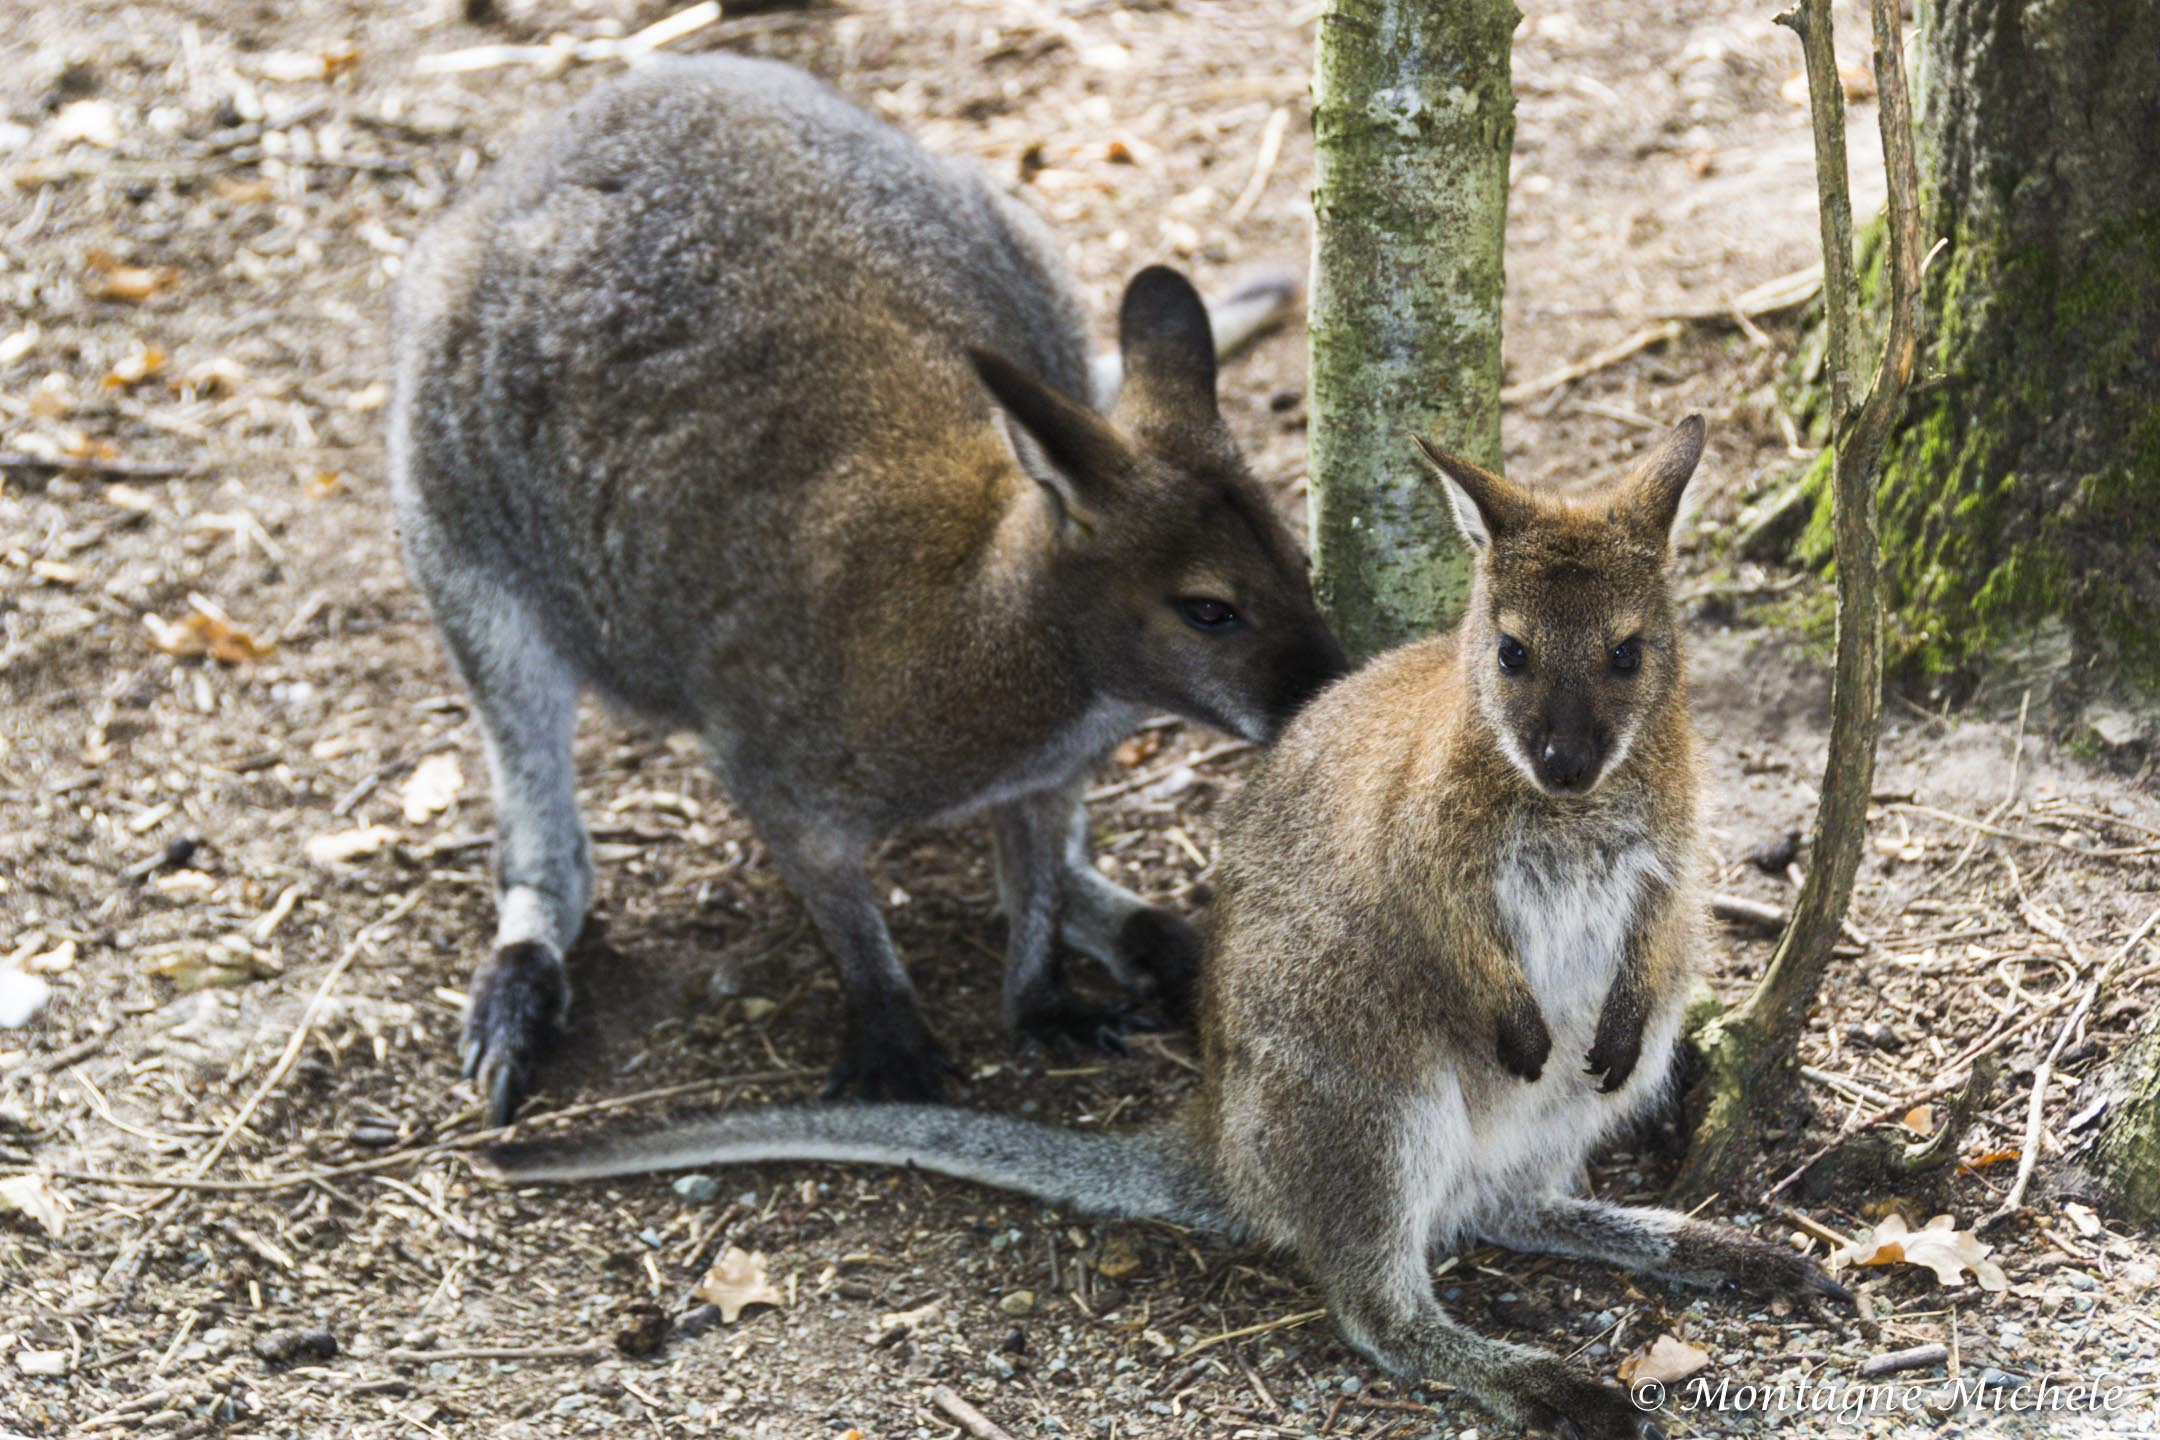 140909_Spaycific Zoo_0054-2